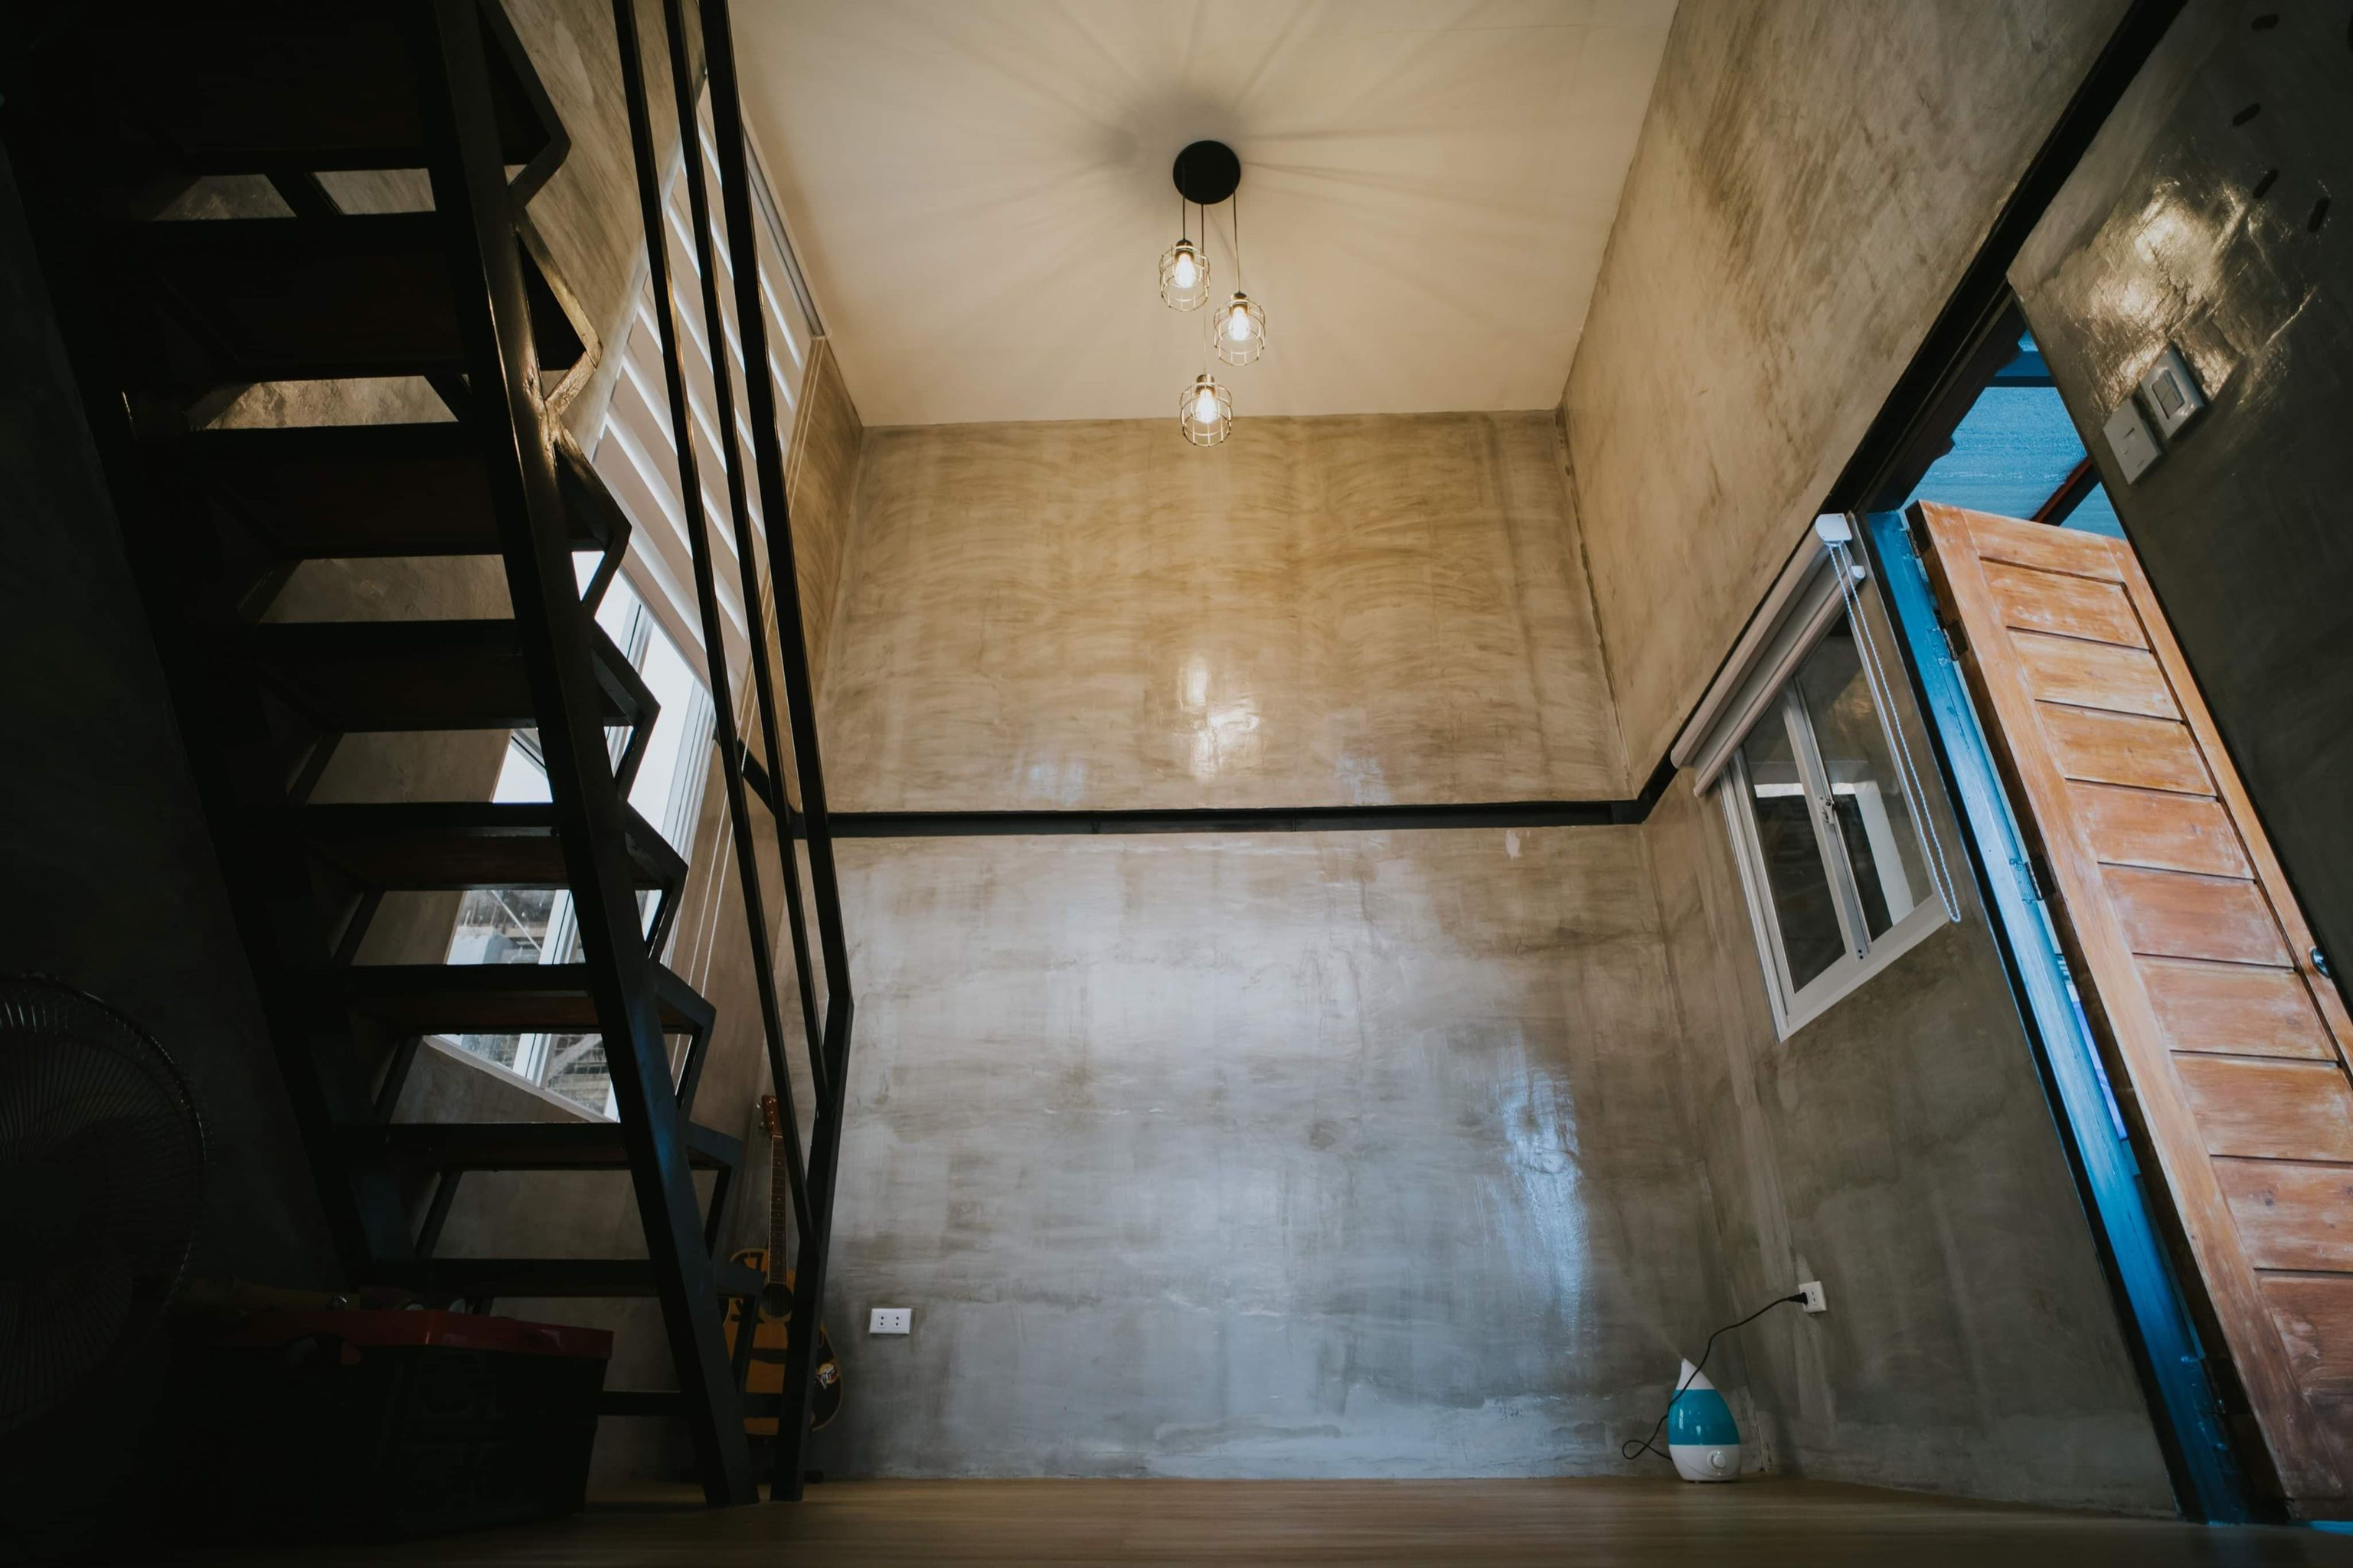 Tiny house: warm lights, stairs, and ceiling